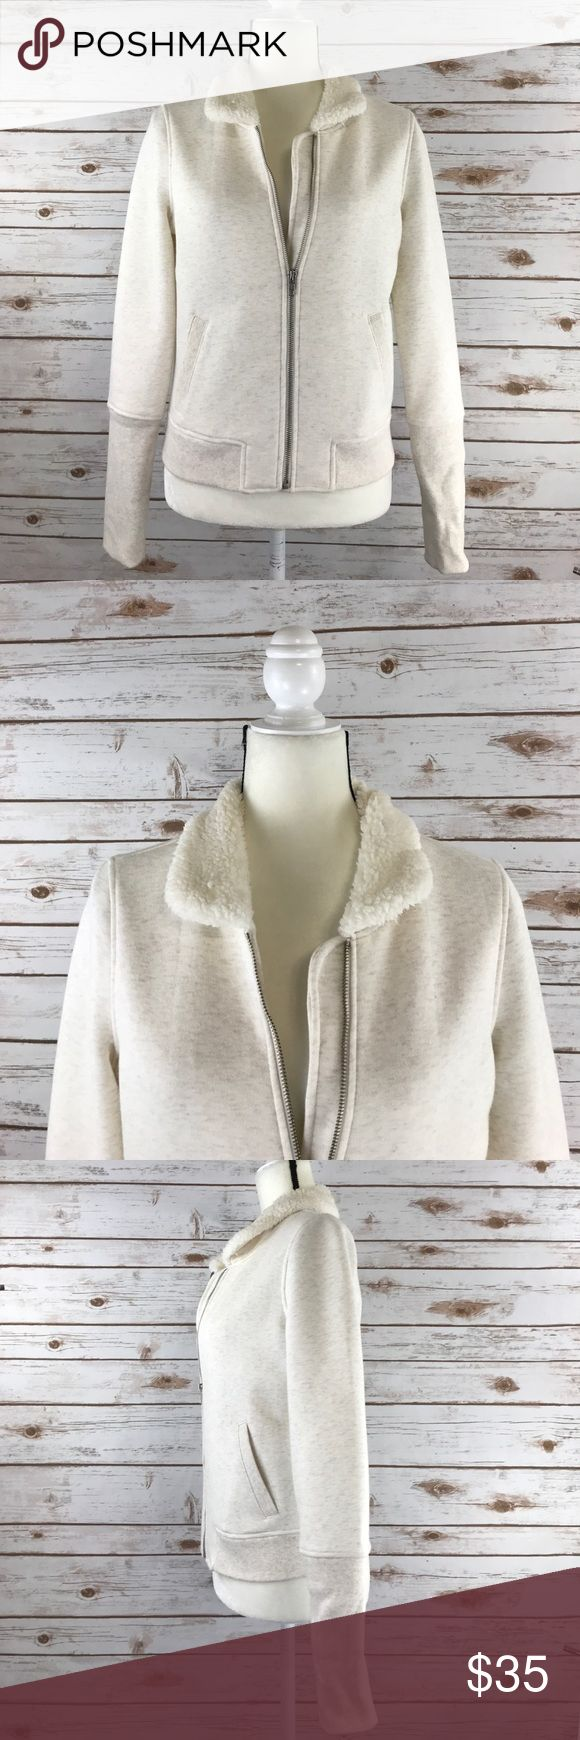 Anthropologie Saturday Sunday Fleece Collar Zip Up This is a Saturday Sunday for Anthropologie zip up sweater in a size small. This zip up is an off white color with a fleece trim collar and pockets in the front. Sweater is in excellent used condition. Thanks! Anthropologie Sweaters